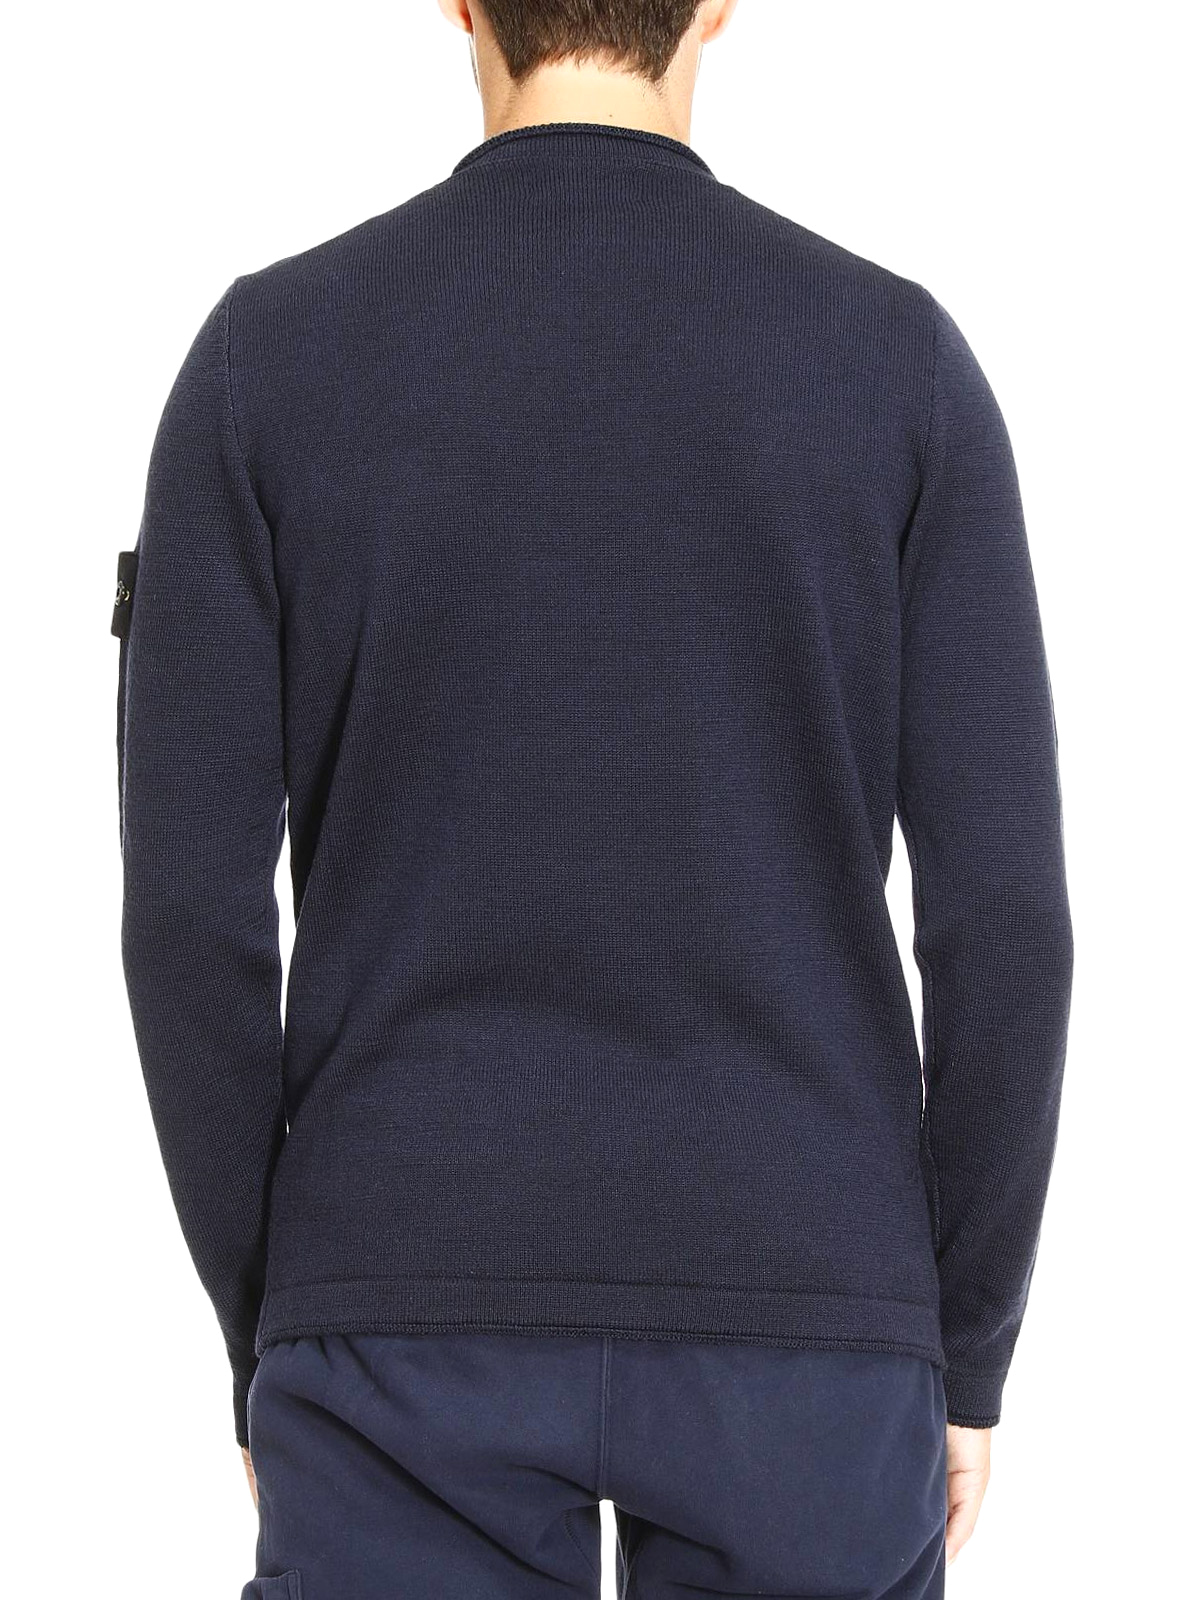 chest pocket roll neck pullover by stone island crew necks shop online at 533d7v0028. Black Bedroom Furniture Sets. Home Design Ideas